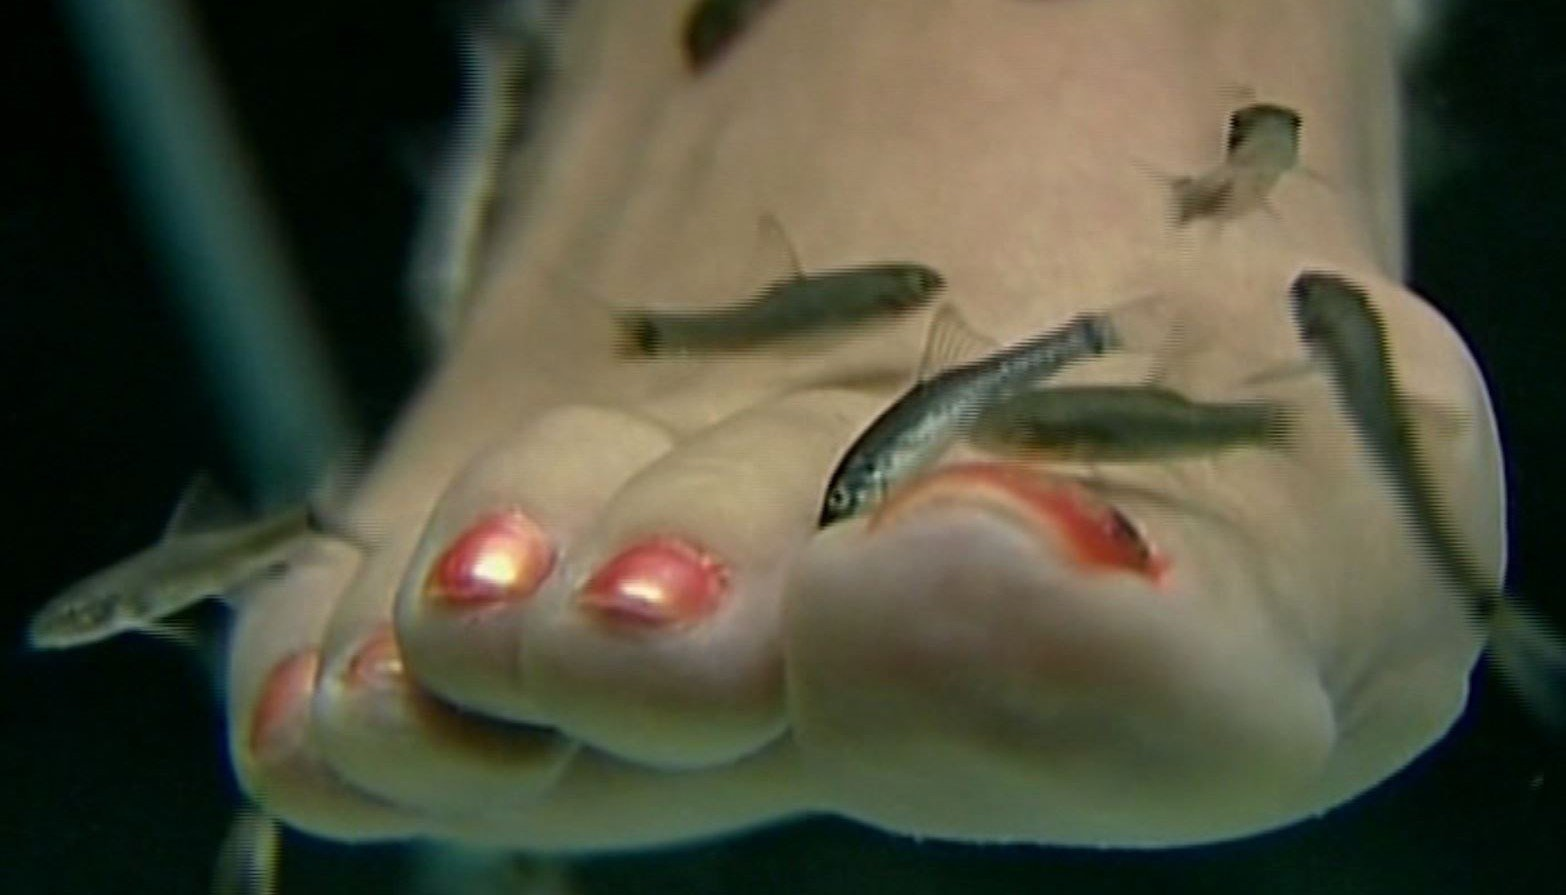 Woman lost her toenails after fish pedicure